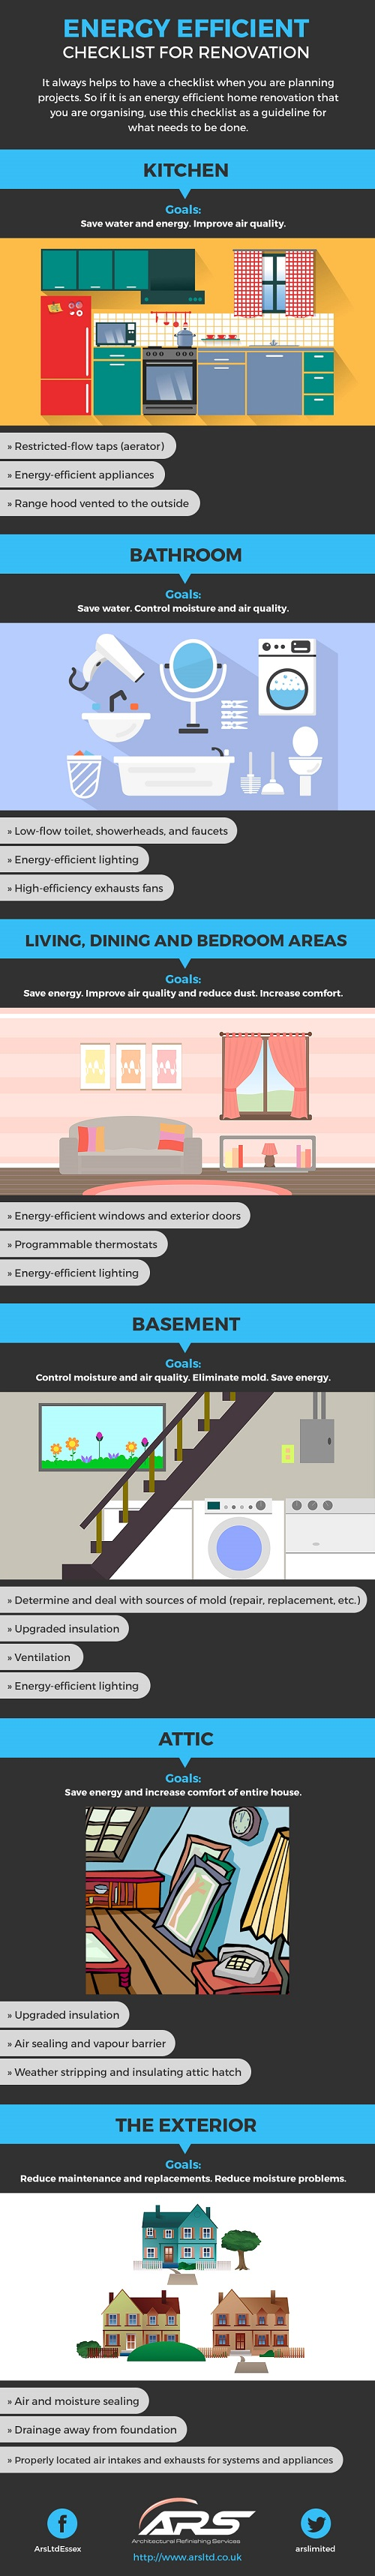 Energy Efficient Checklist for Renovation